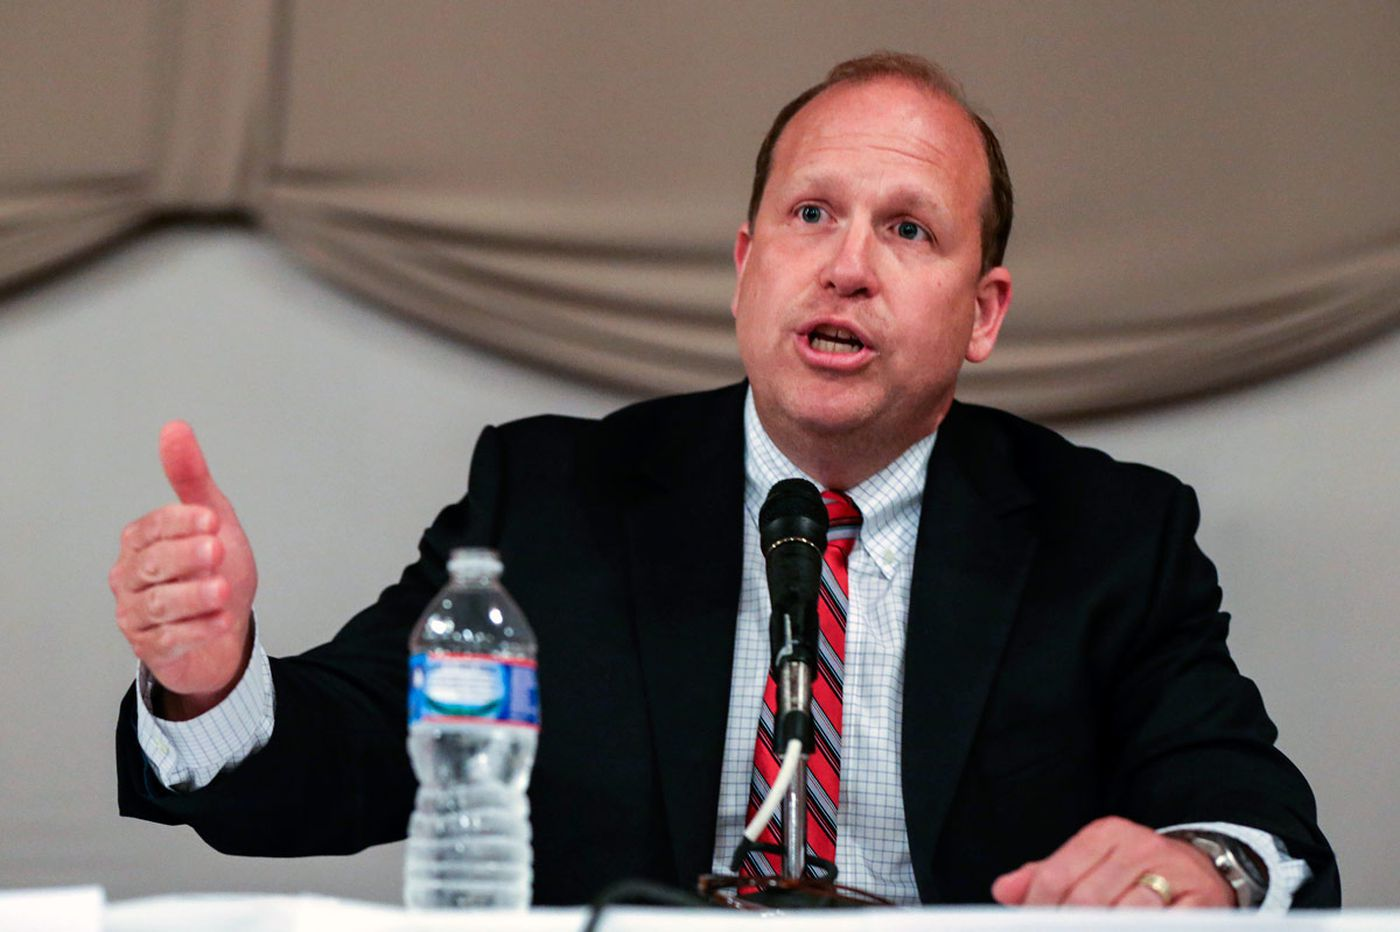 Pa. Senate Democrats reviewing complaint about State Sen. Daylin Leach